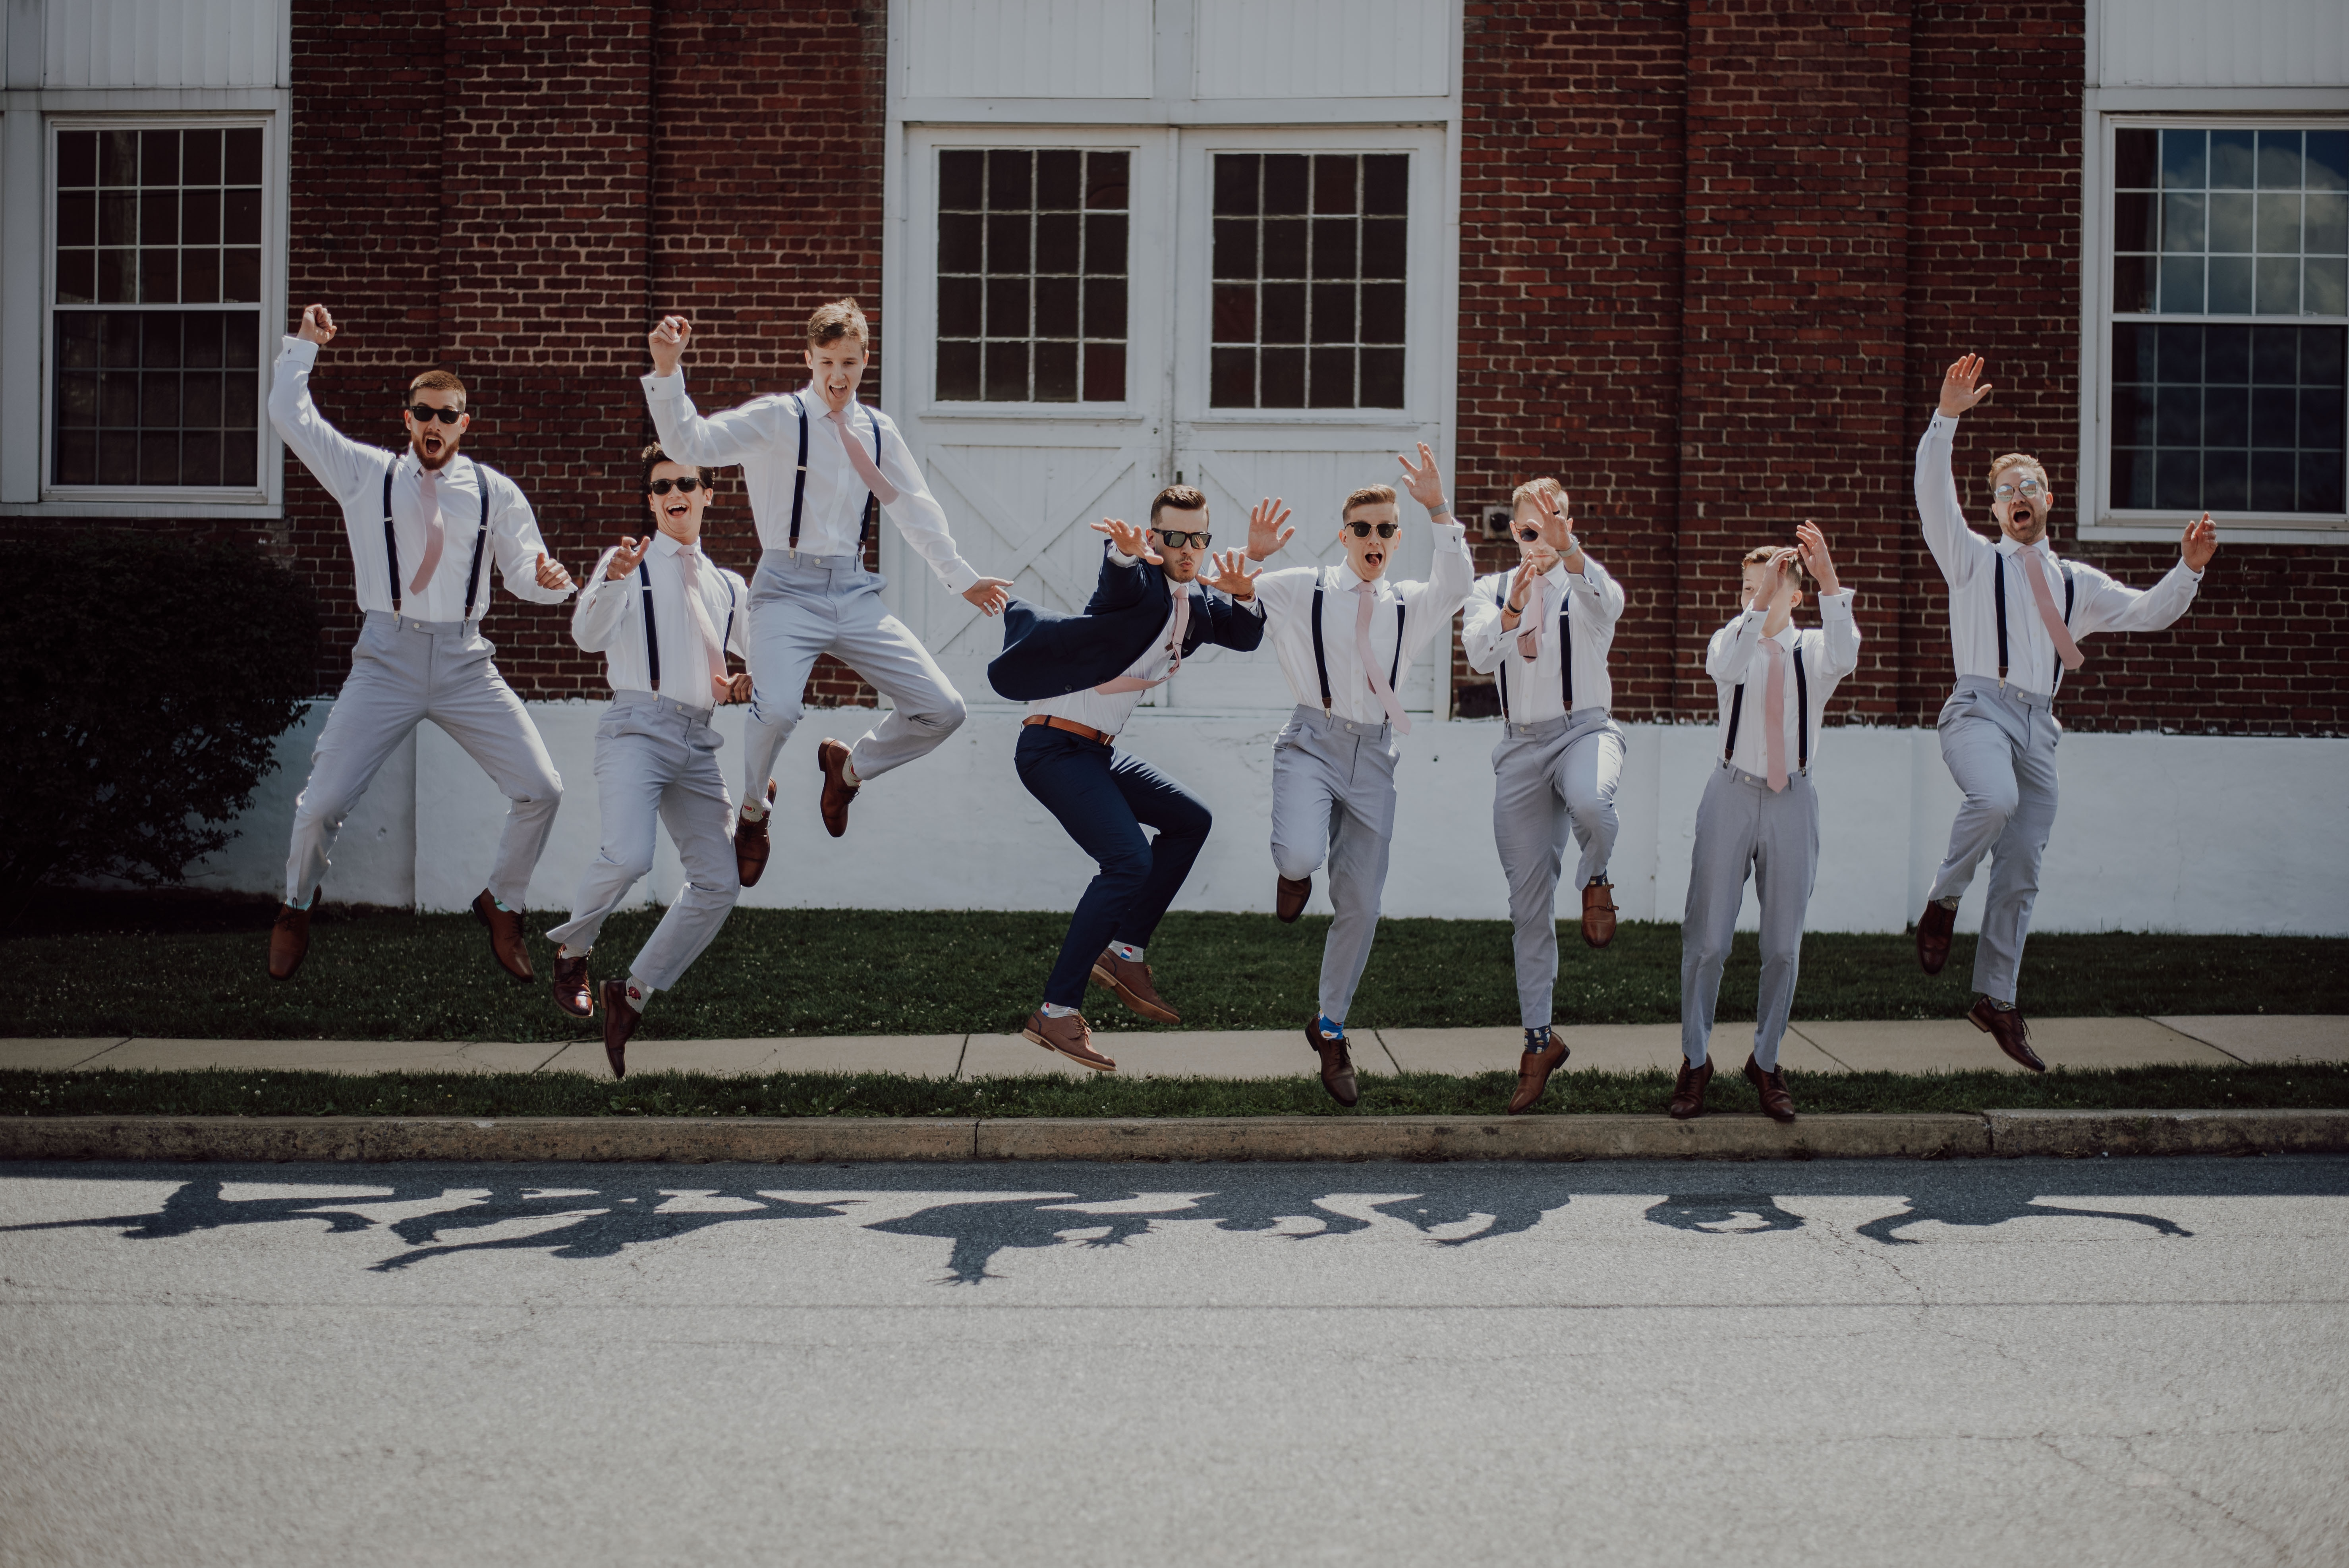 Groom celebrating with his groomsmen, cheerfully jumping off the street curb in